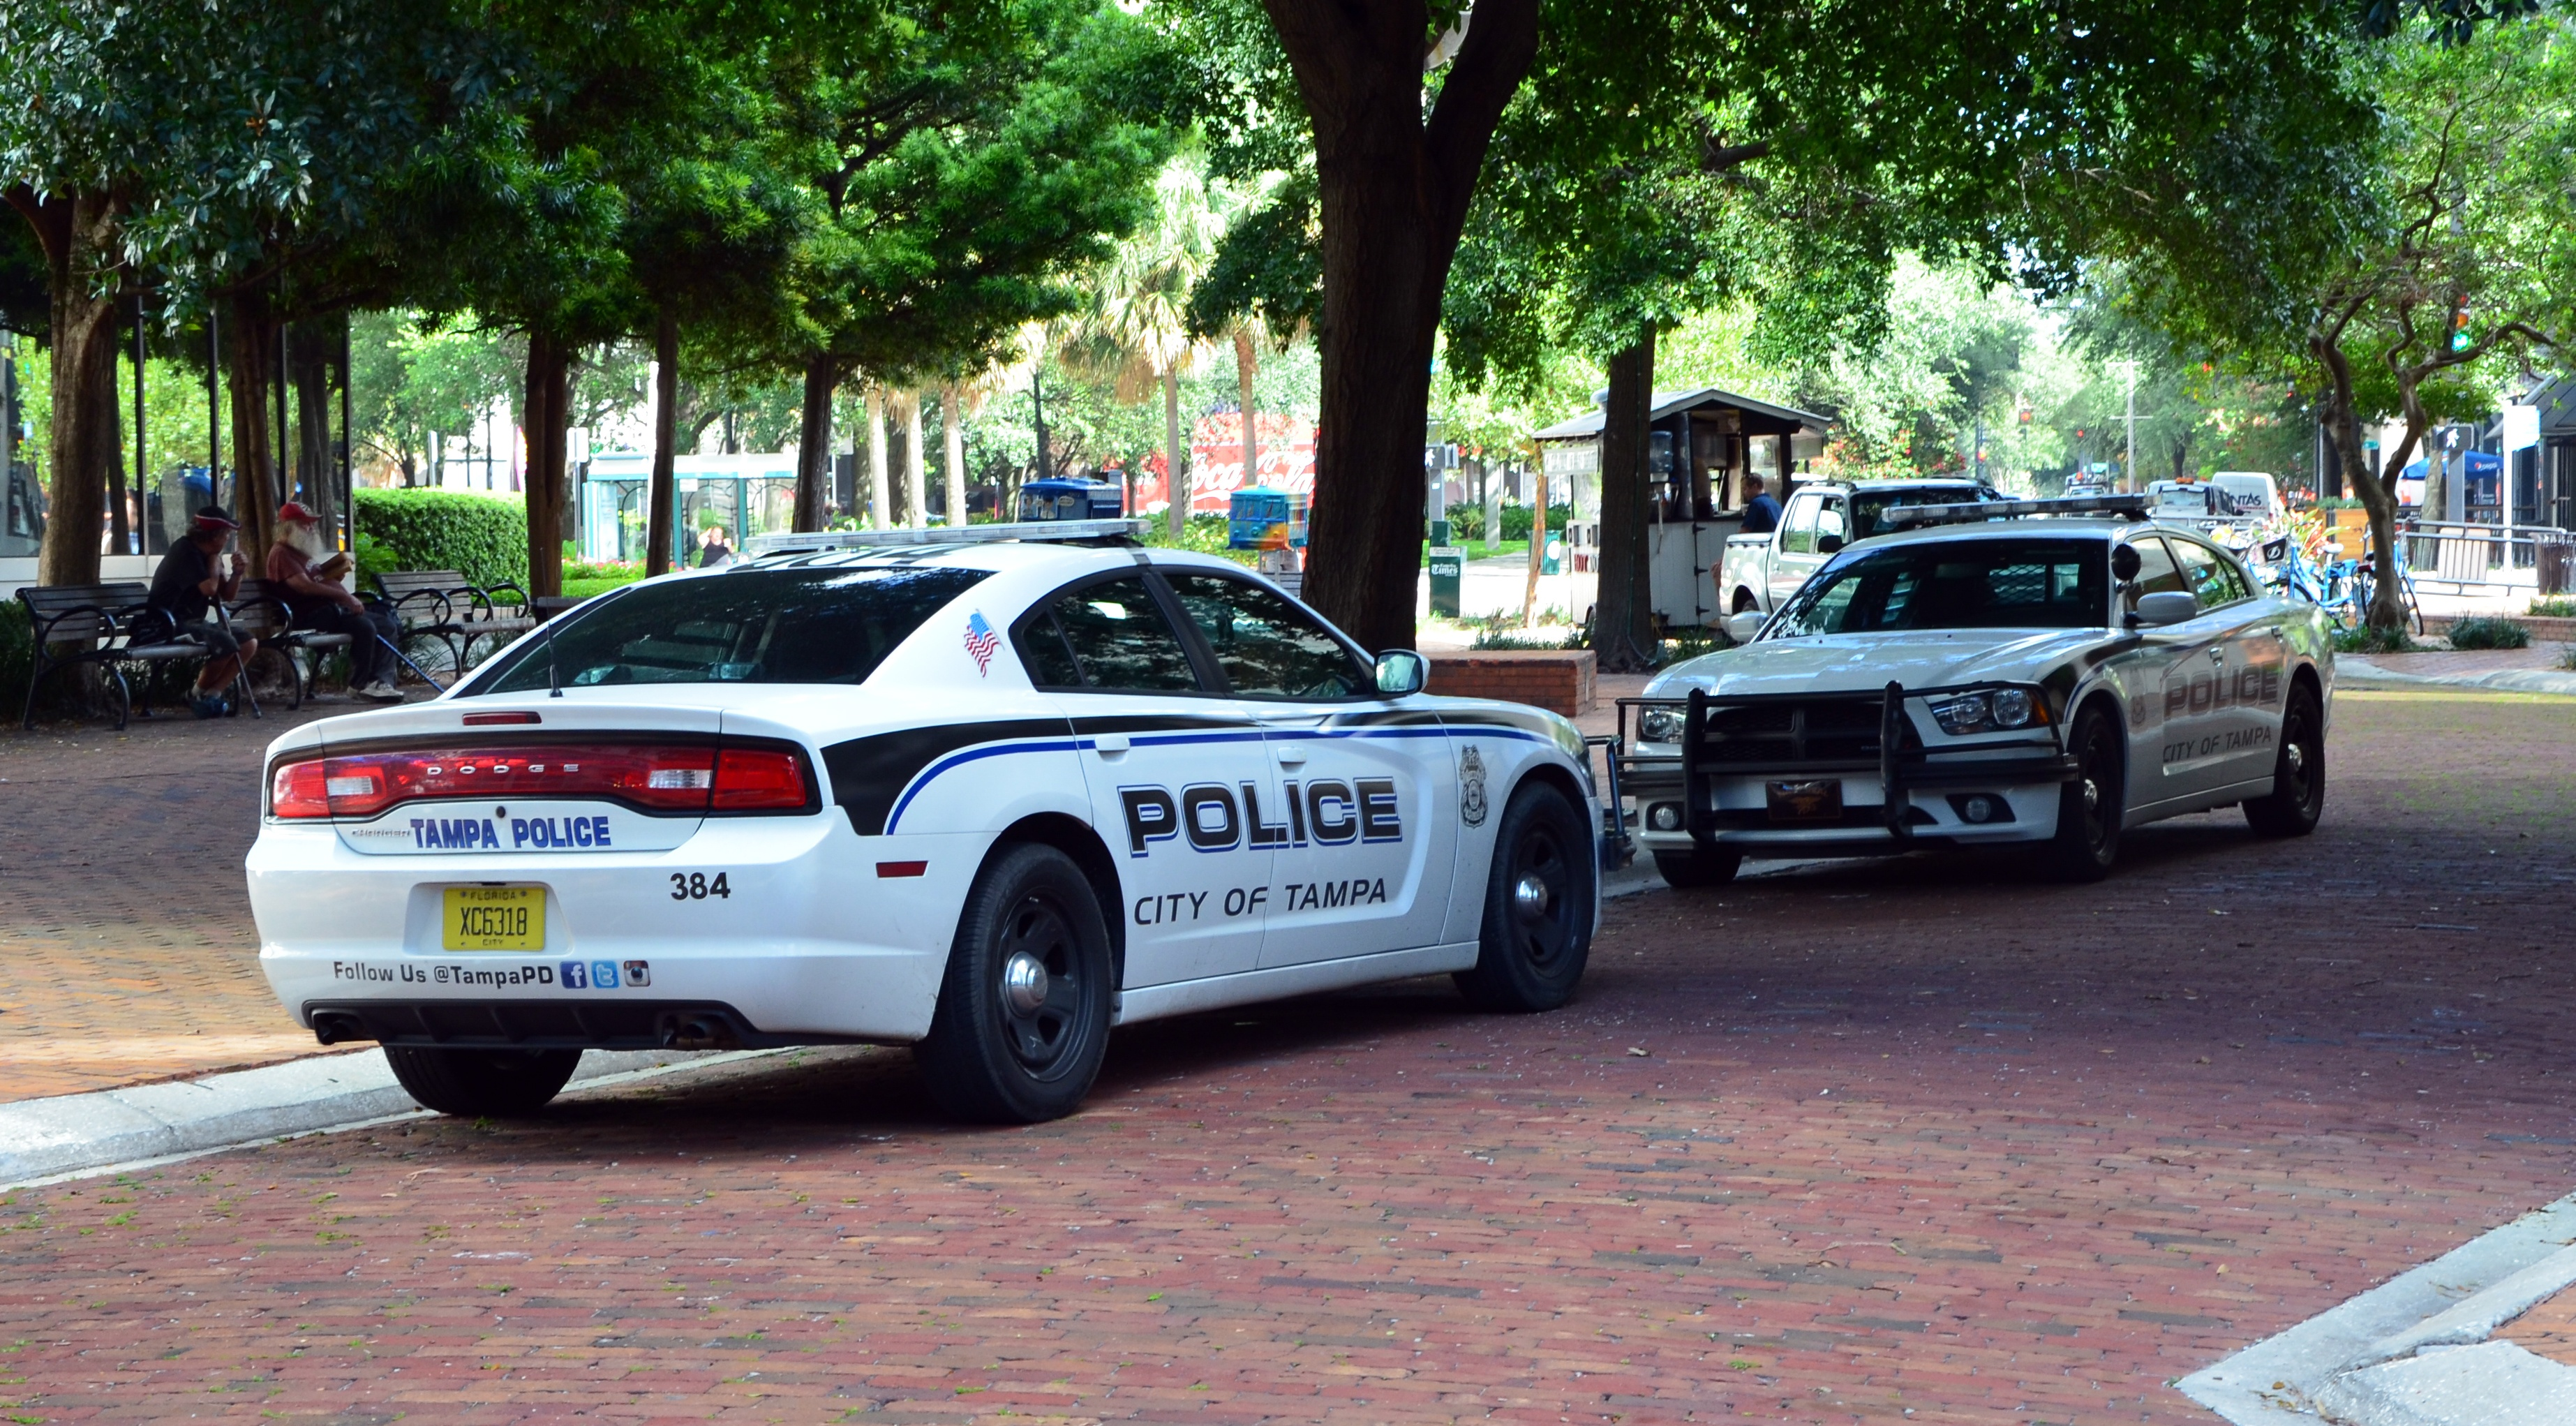 tampa police, be sure to aways file a police report